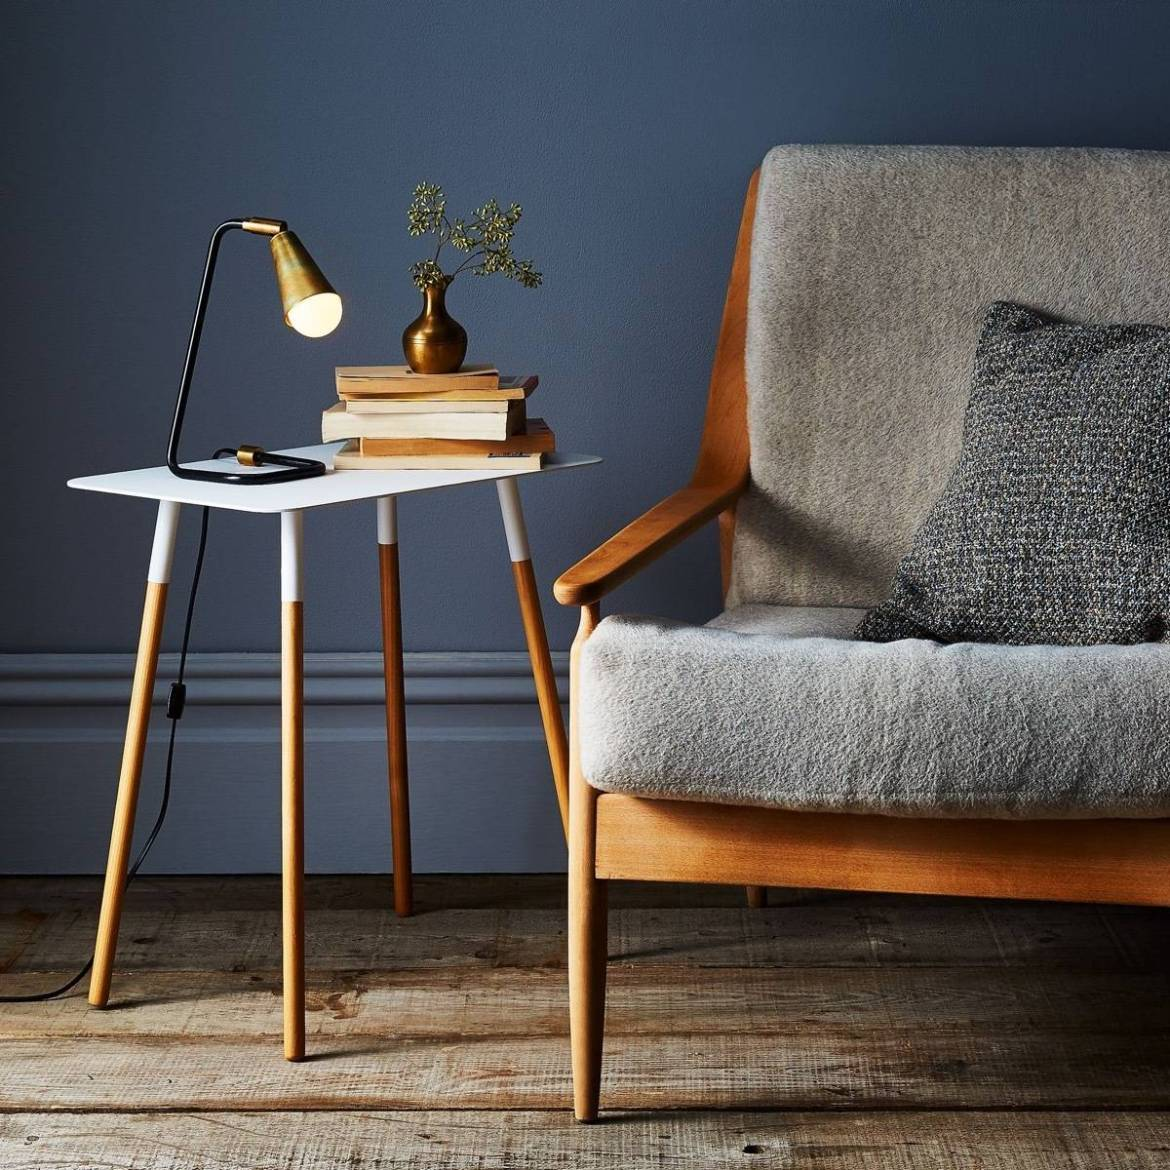 Rectangular side table from Food52